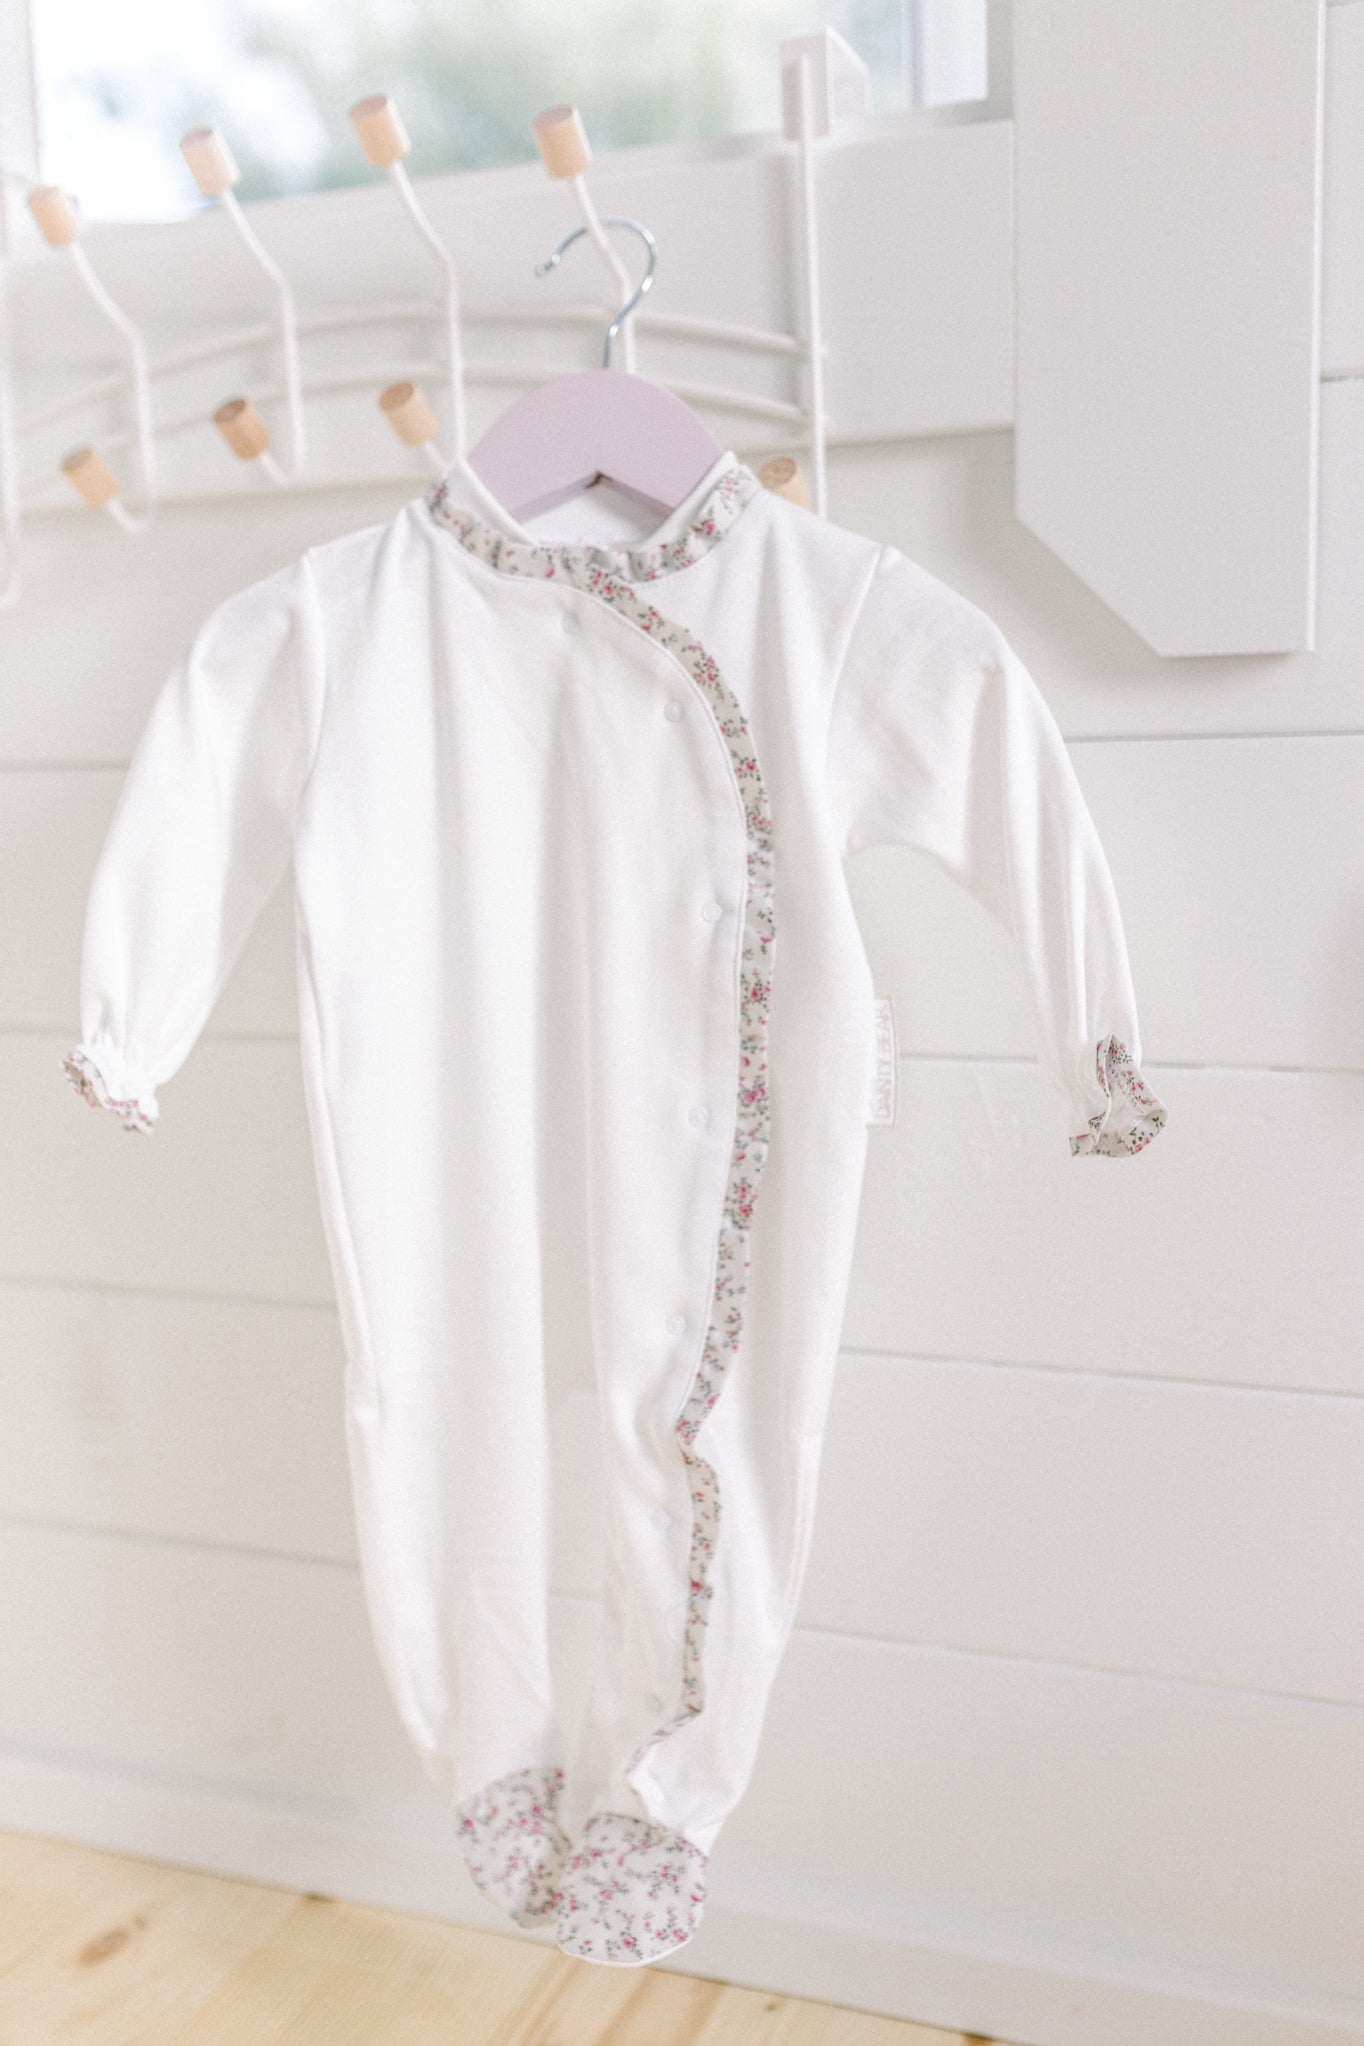 Floral trim baby grow